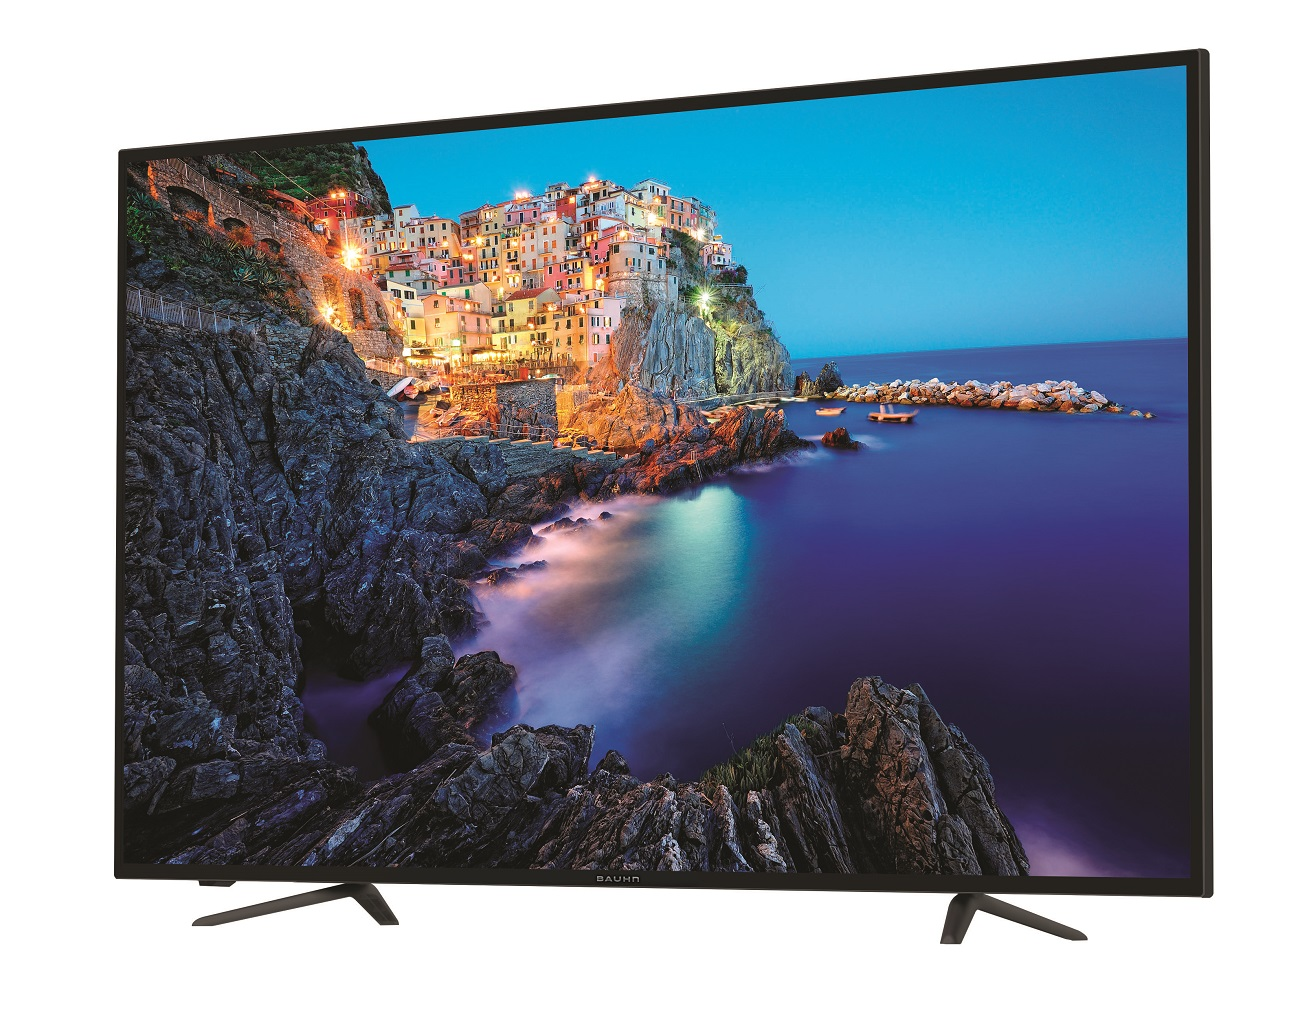 A sub 500 uhd 4k tv to go on sale at aldi lowest tv price ever channelnews - Ultra high def tv prank ...